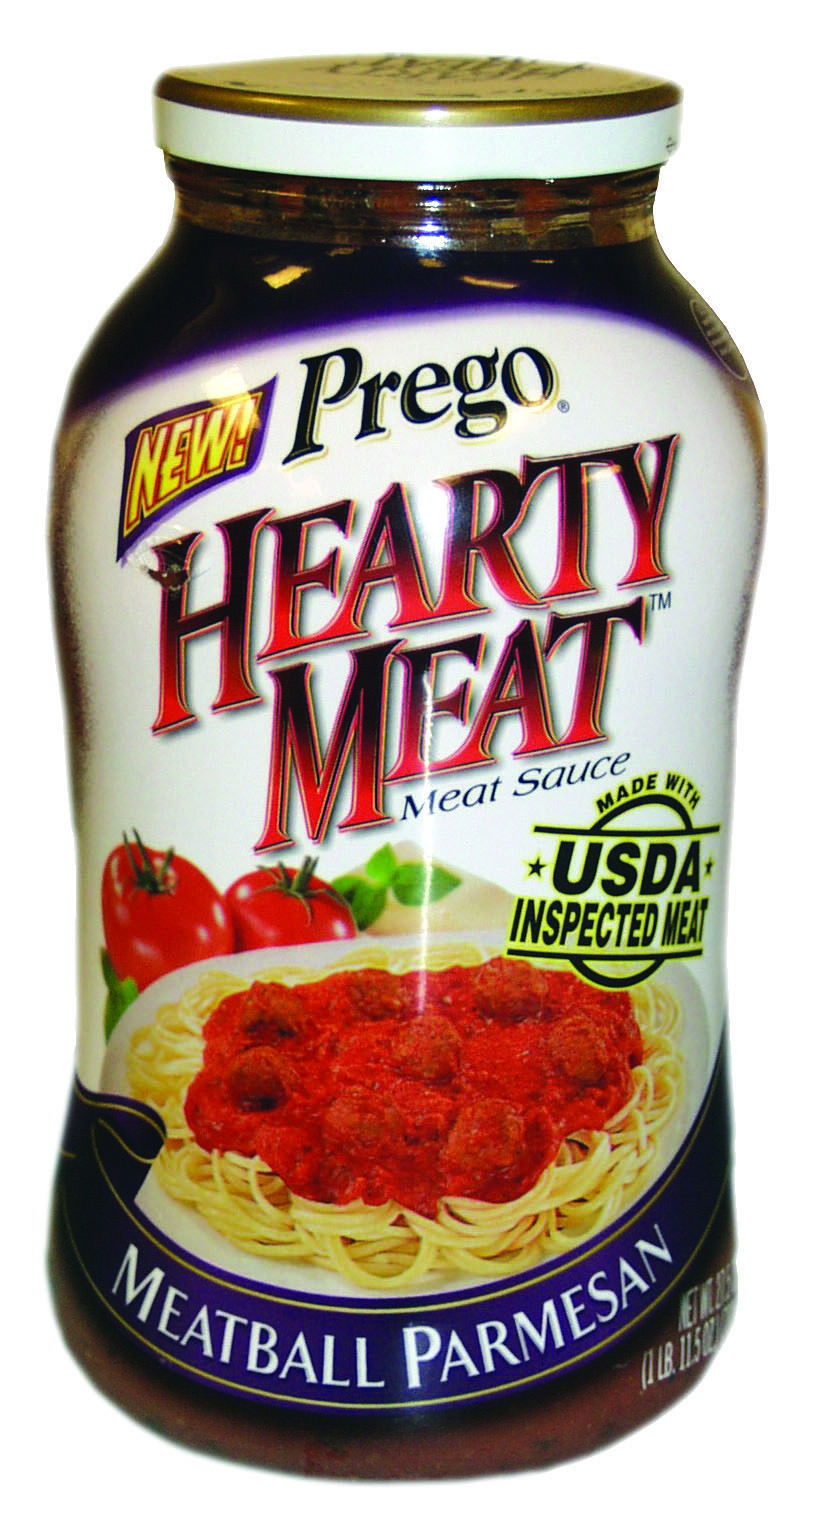 A jar of Prego Hearty Meat Sauce